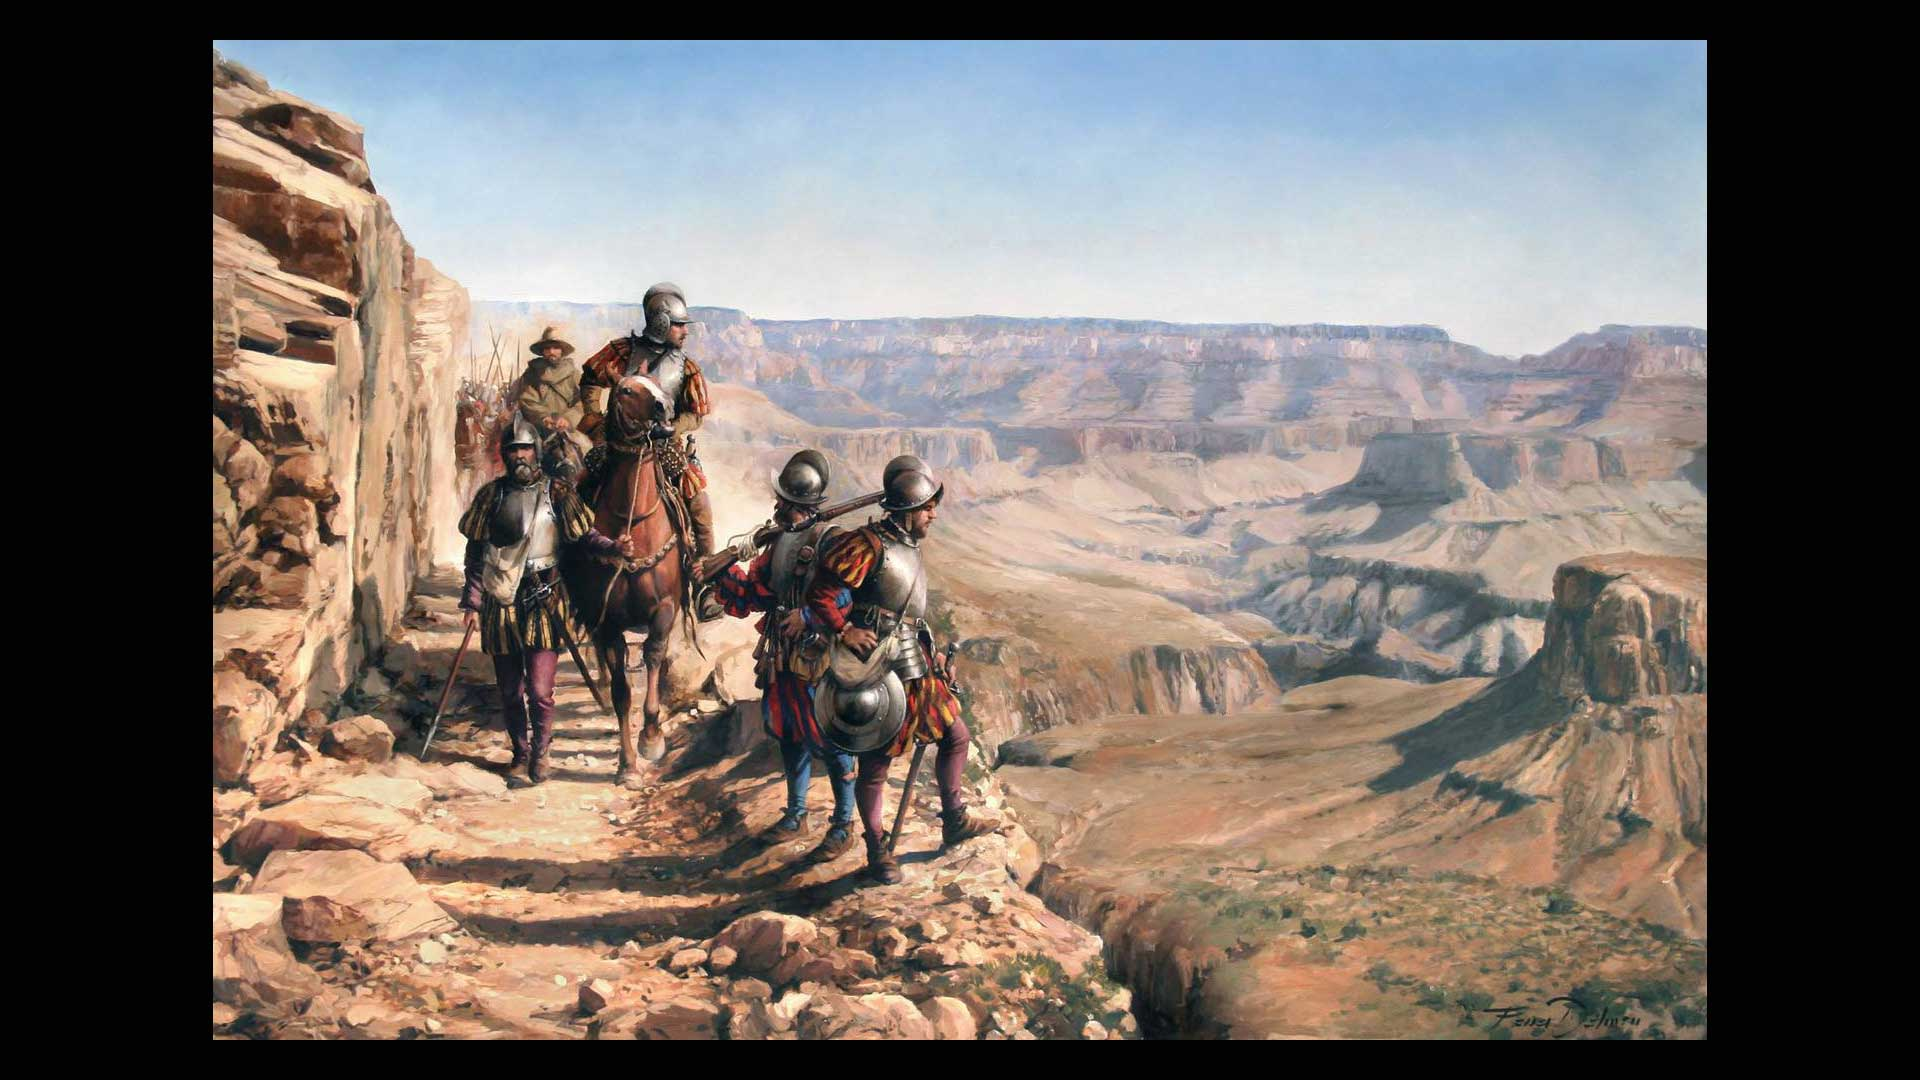 "Image titled ""La conquista del Colorado,"" by Augusto Ferrer-Dalmau, depicts 16th century Spanish conquistadors in the Grand Canyon."